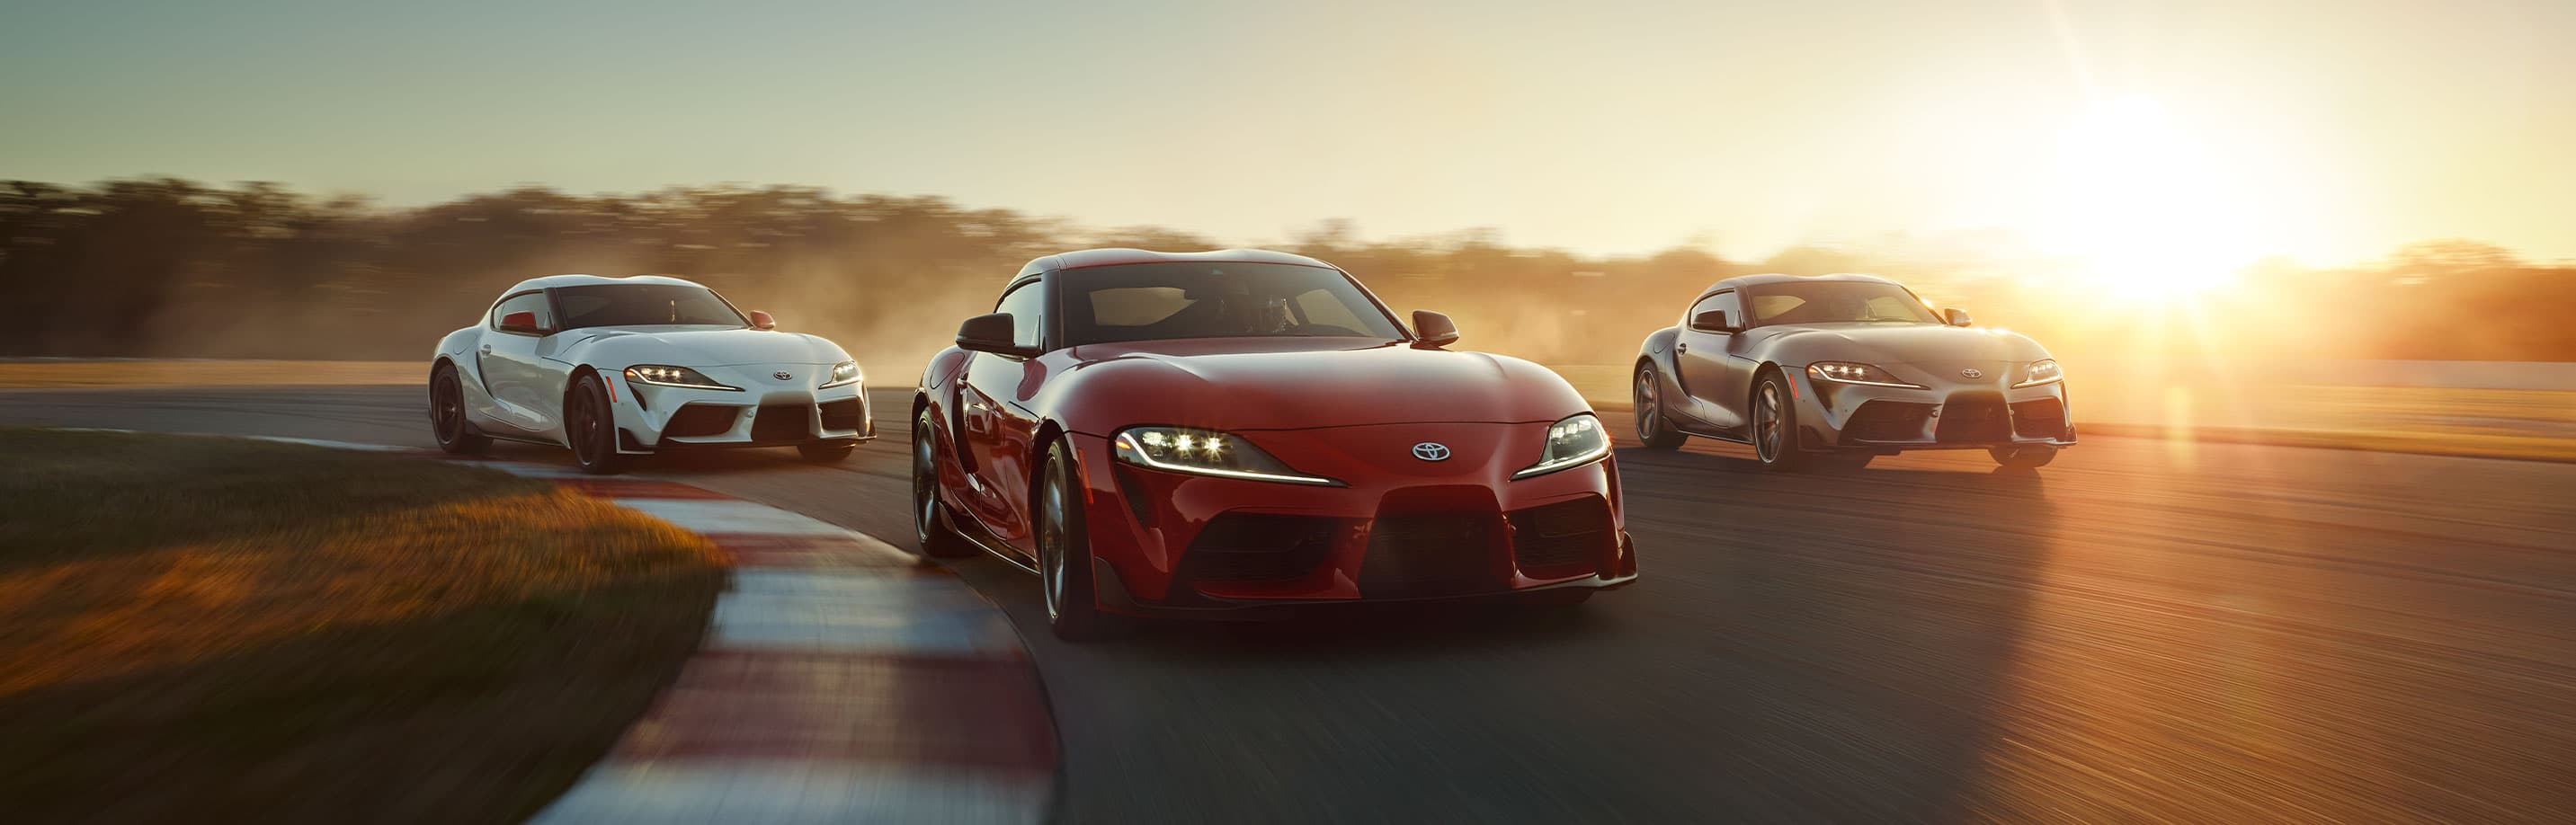 2020 GR Supra coming soon to Haines City, Florida